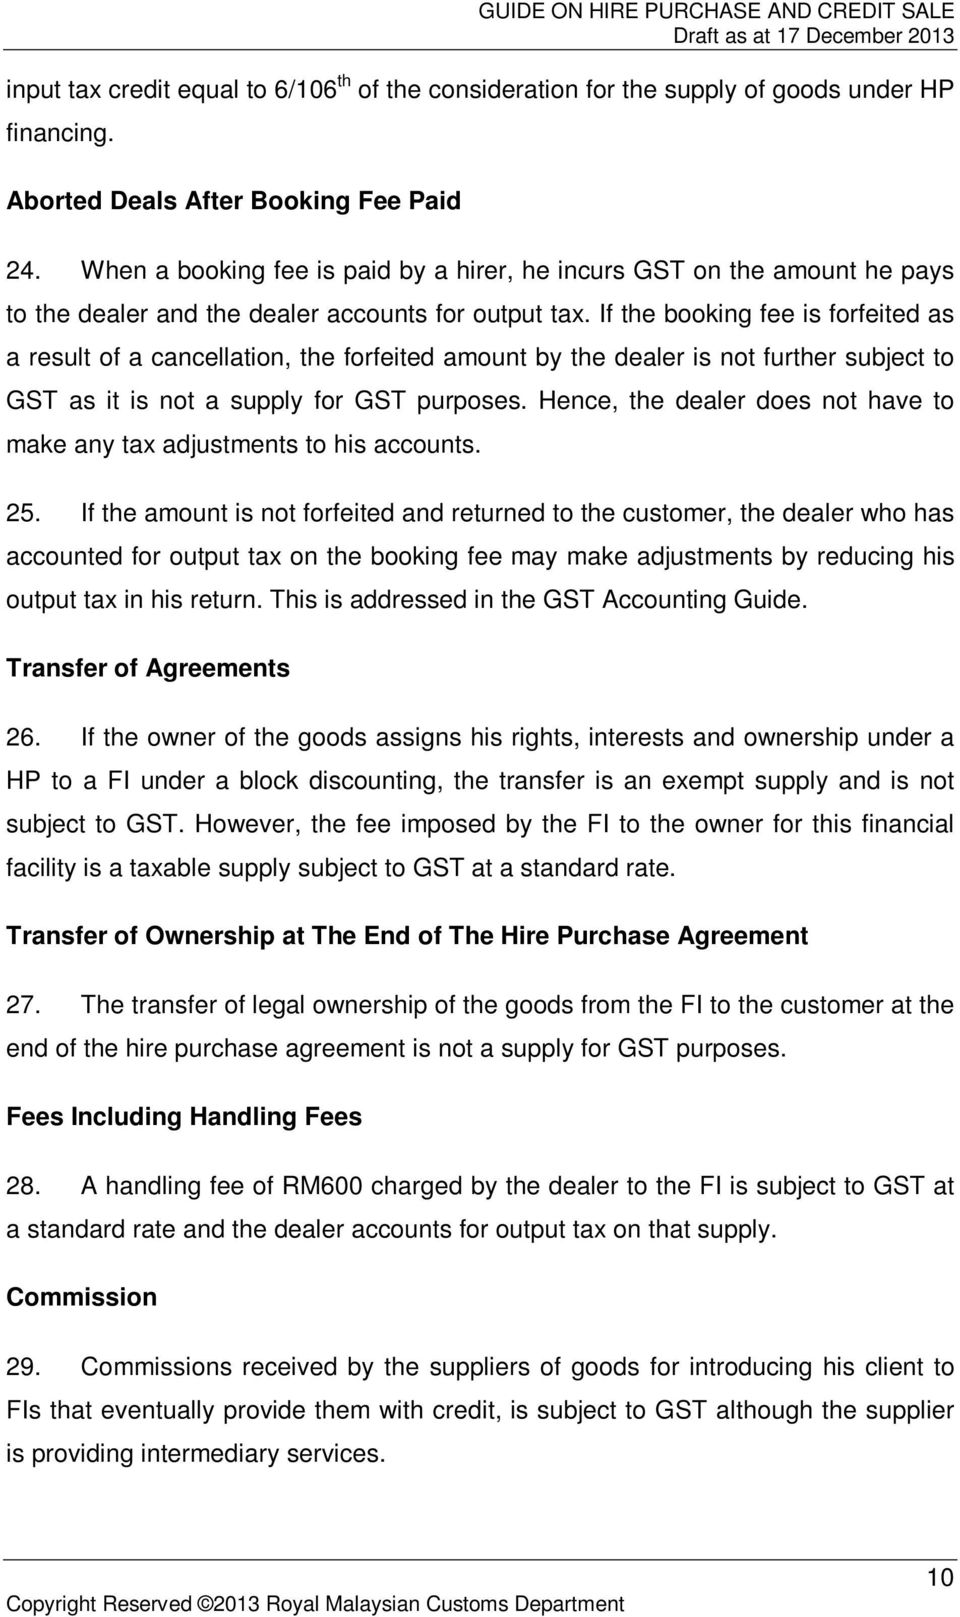 If the booking fee is forfeited as a result of a cancellation, the forfeited amount by the dealer is not further subject to GST as it is not a supply for GST purposes.